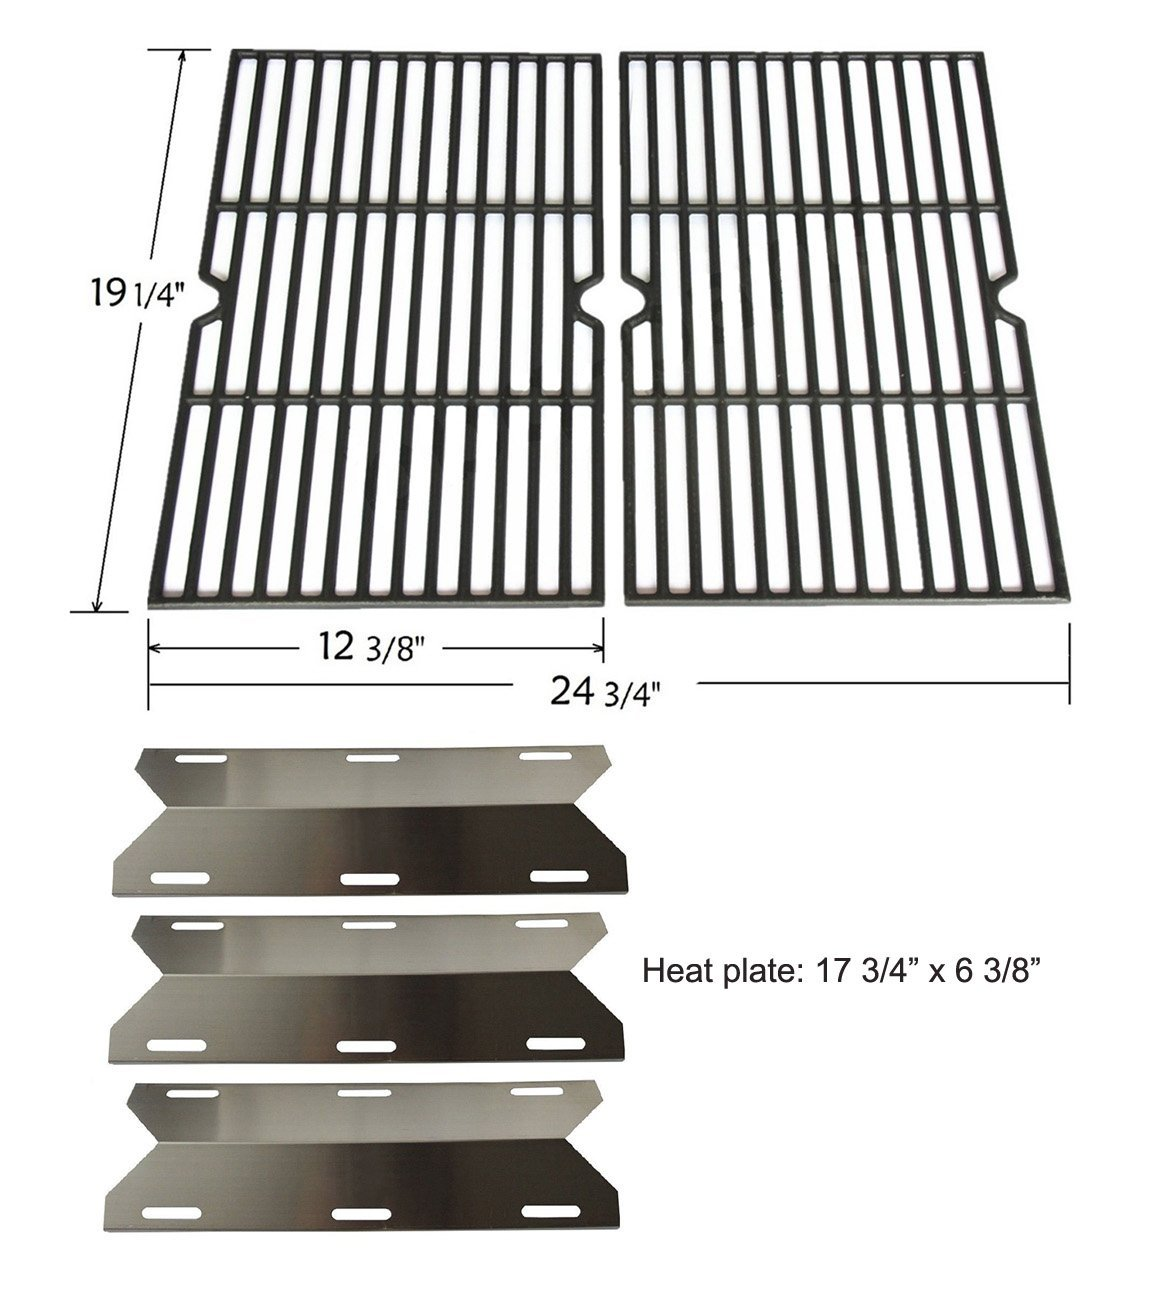 BBQ funland Parts Kit Replacement for Jenn Air Gas Grill 720-0336 and Costco Kirland Pro Series 720-0033 (2 Cast Iron Cooking Grids & 3 Stainless Steel Heat Plates)